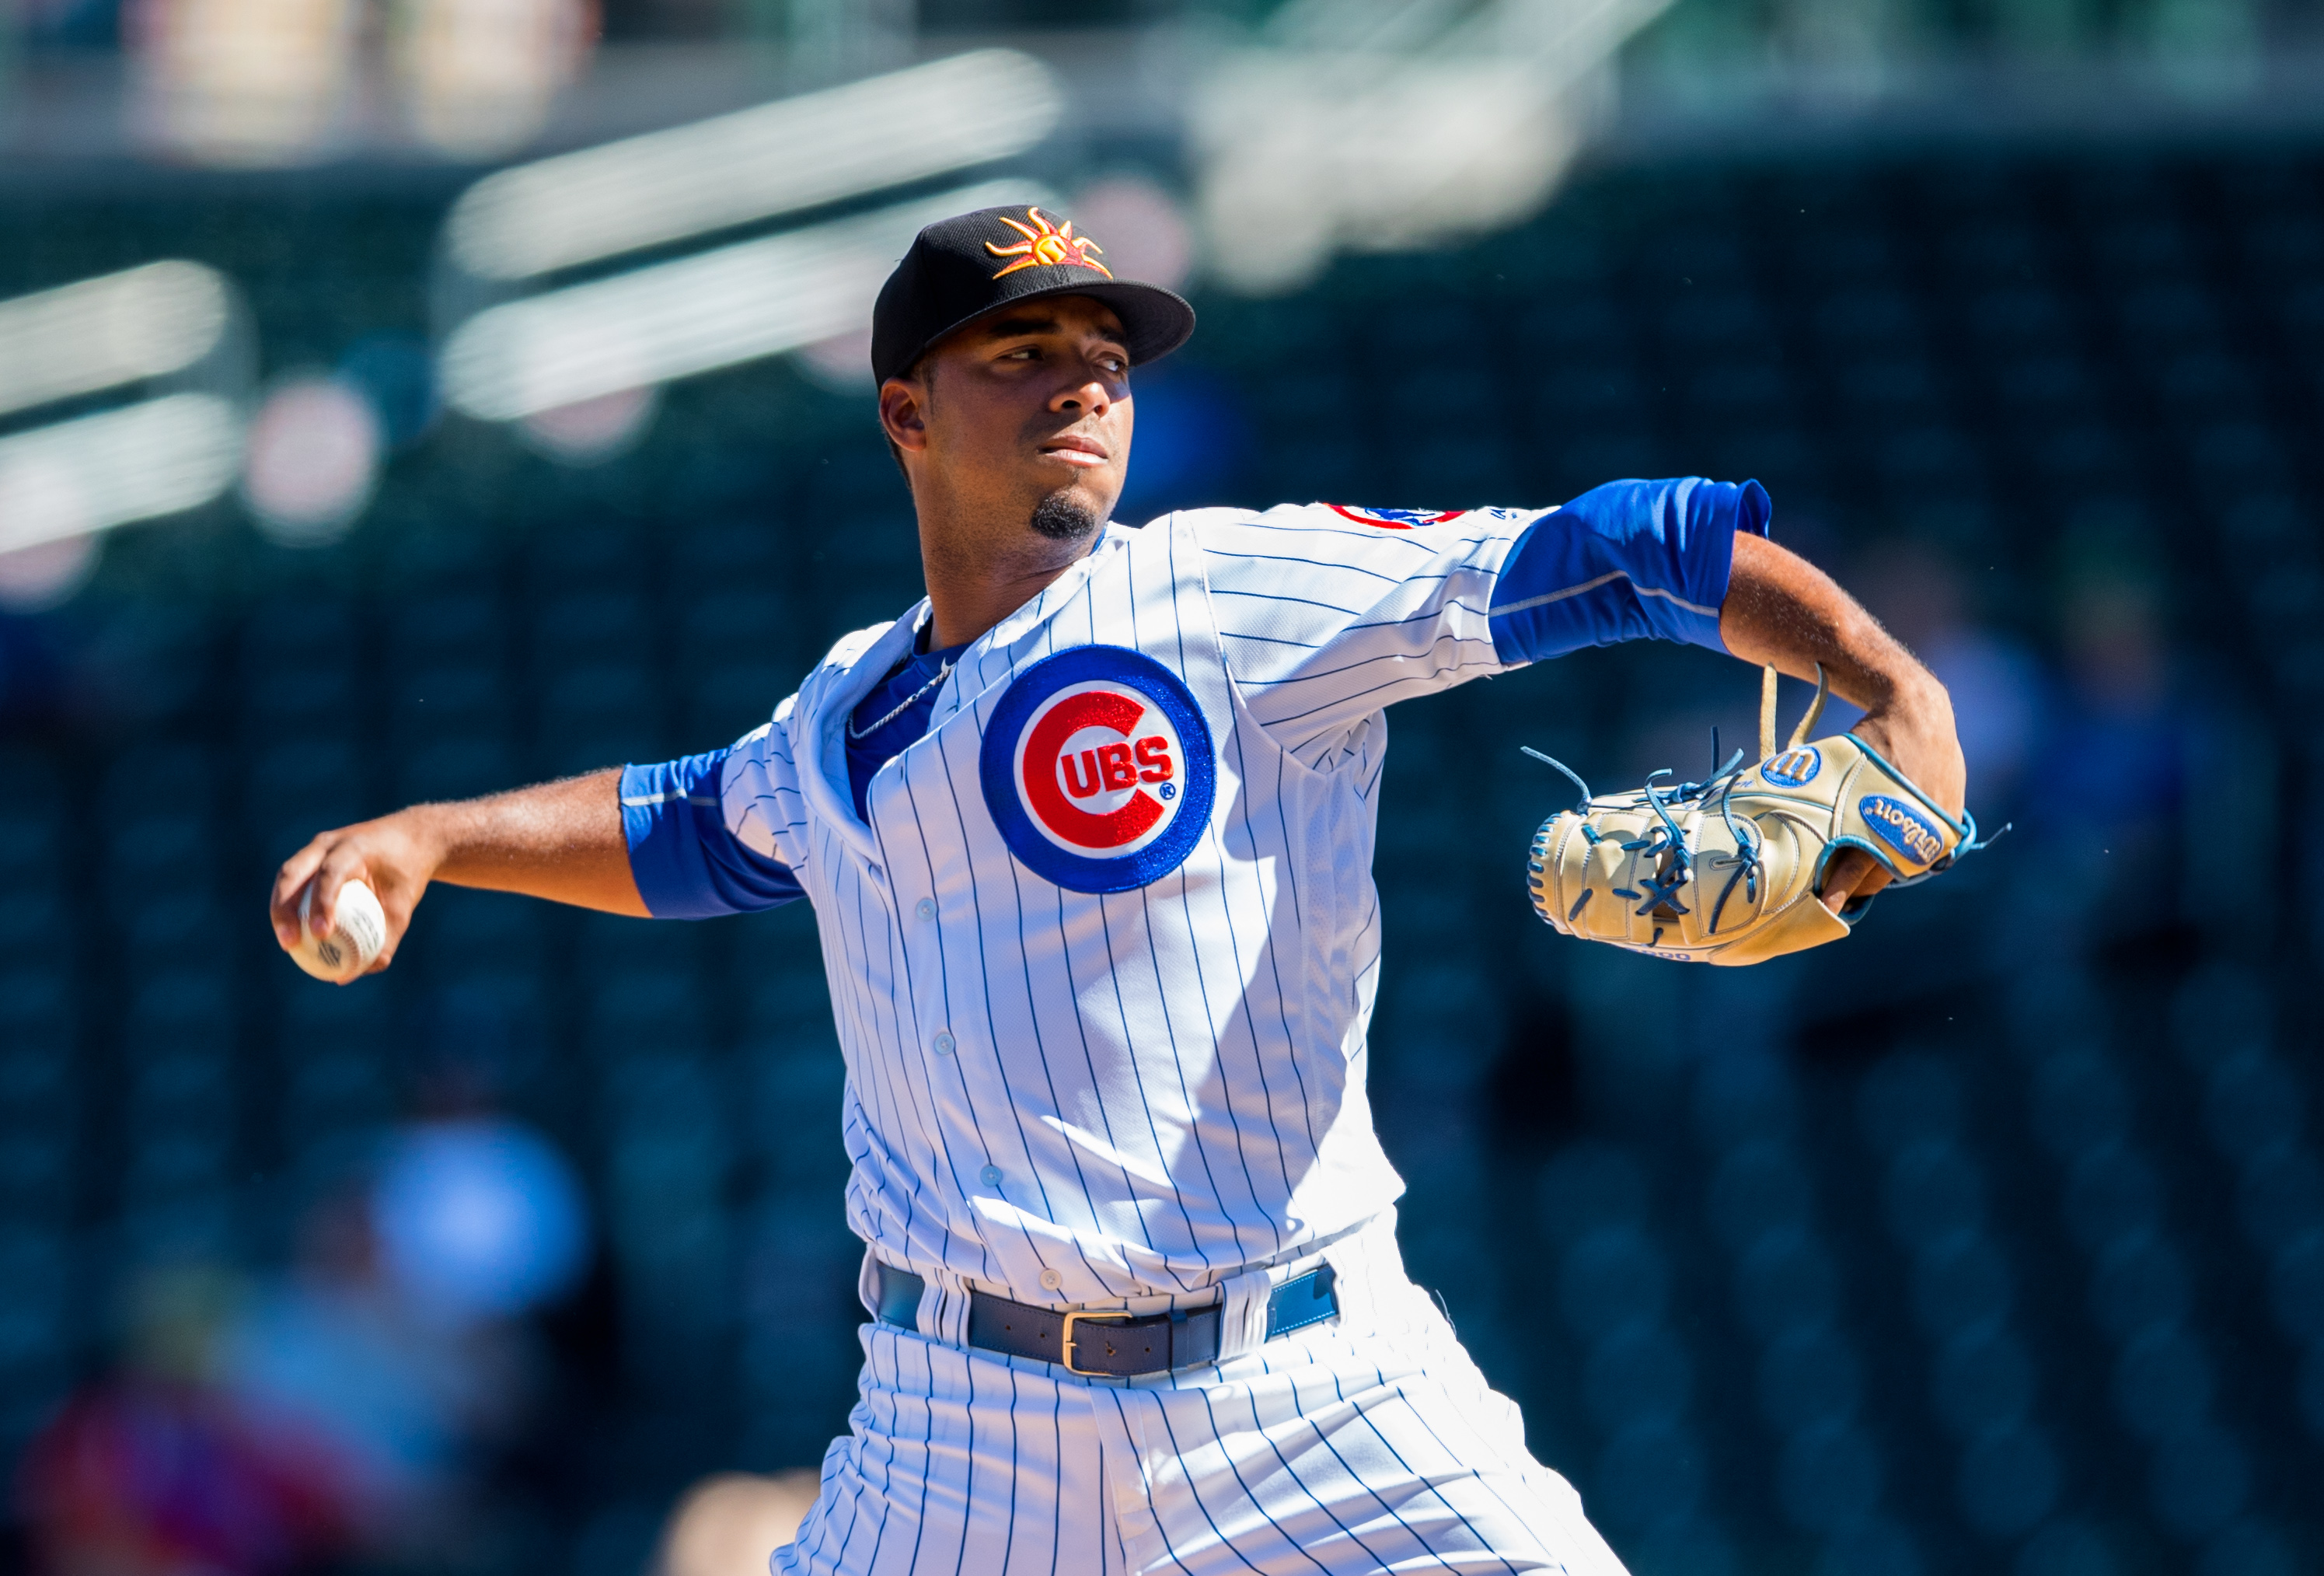 Oct 18, 2016; Mesa, AZ, USA; Mesa Solar Sox pitcher Duane Underwood Jr of the Chicago Cubs against the Scottsdale Scorpions during an Arizona Fall League game at Sloan Field. Mandatory Credit: Mark J. Rebilas-USA TODAY Sports